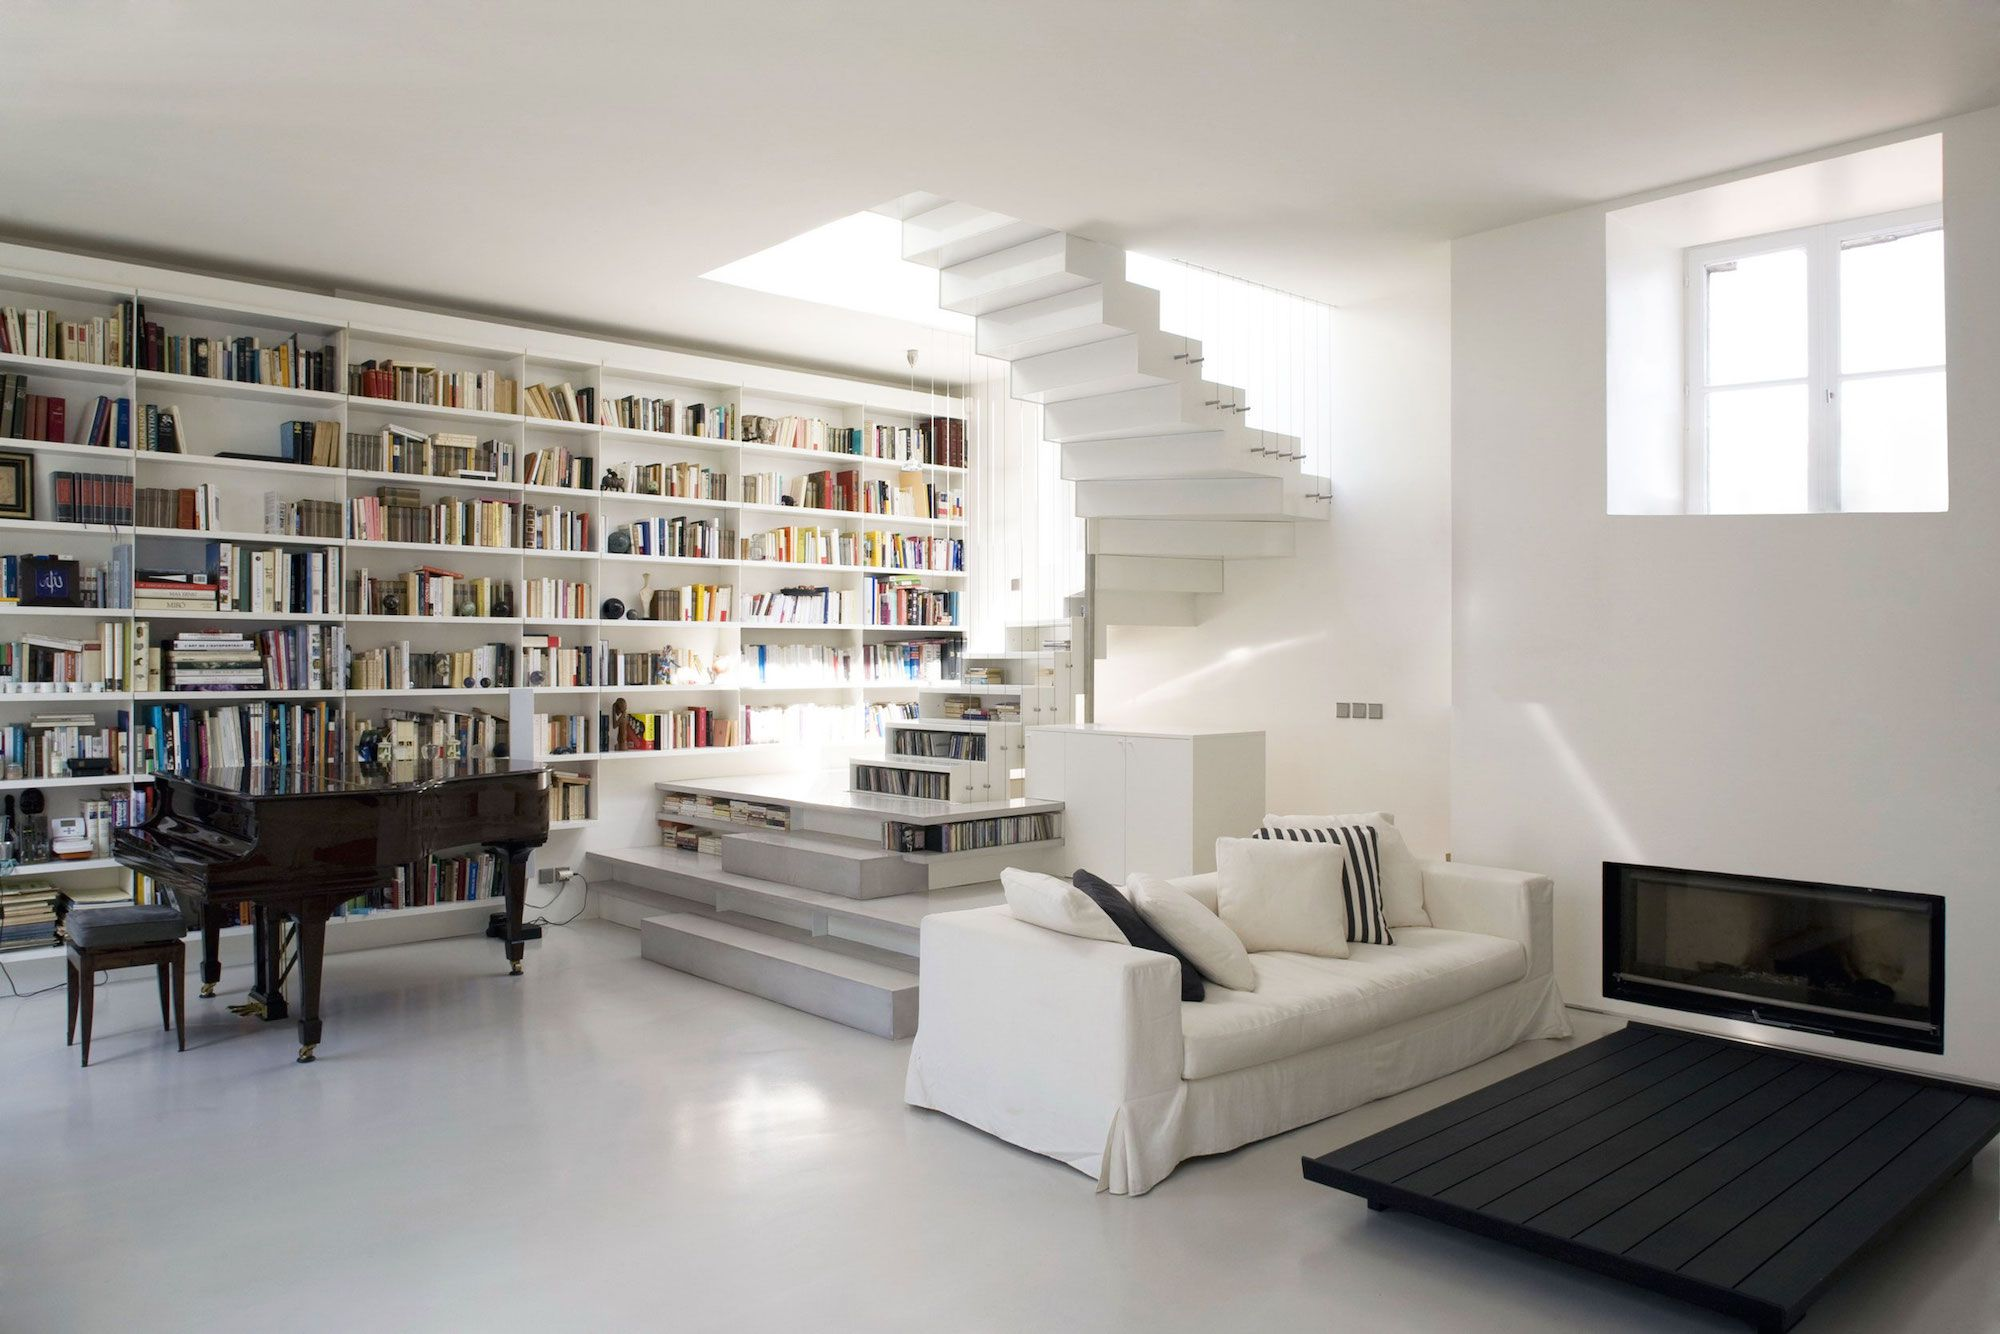 abstraction-active-loft-smoothcore-architects-011